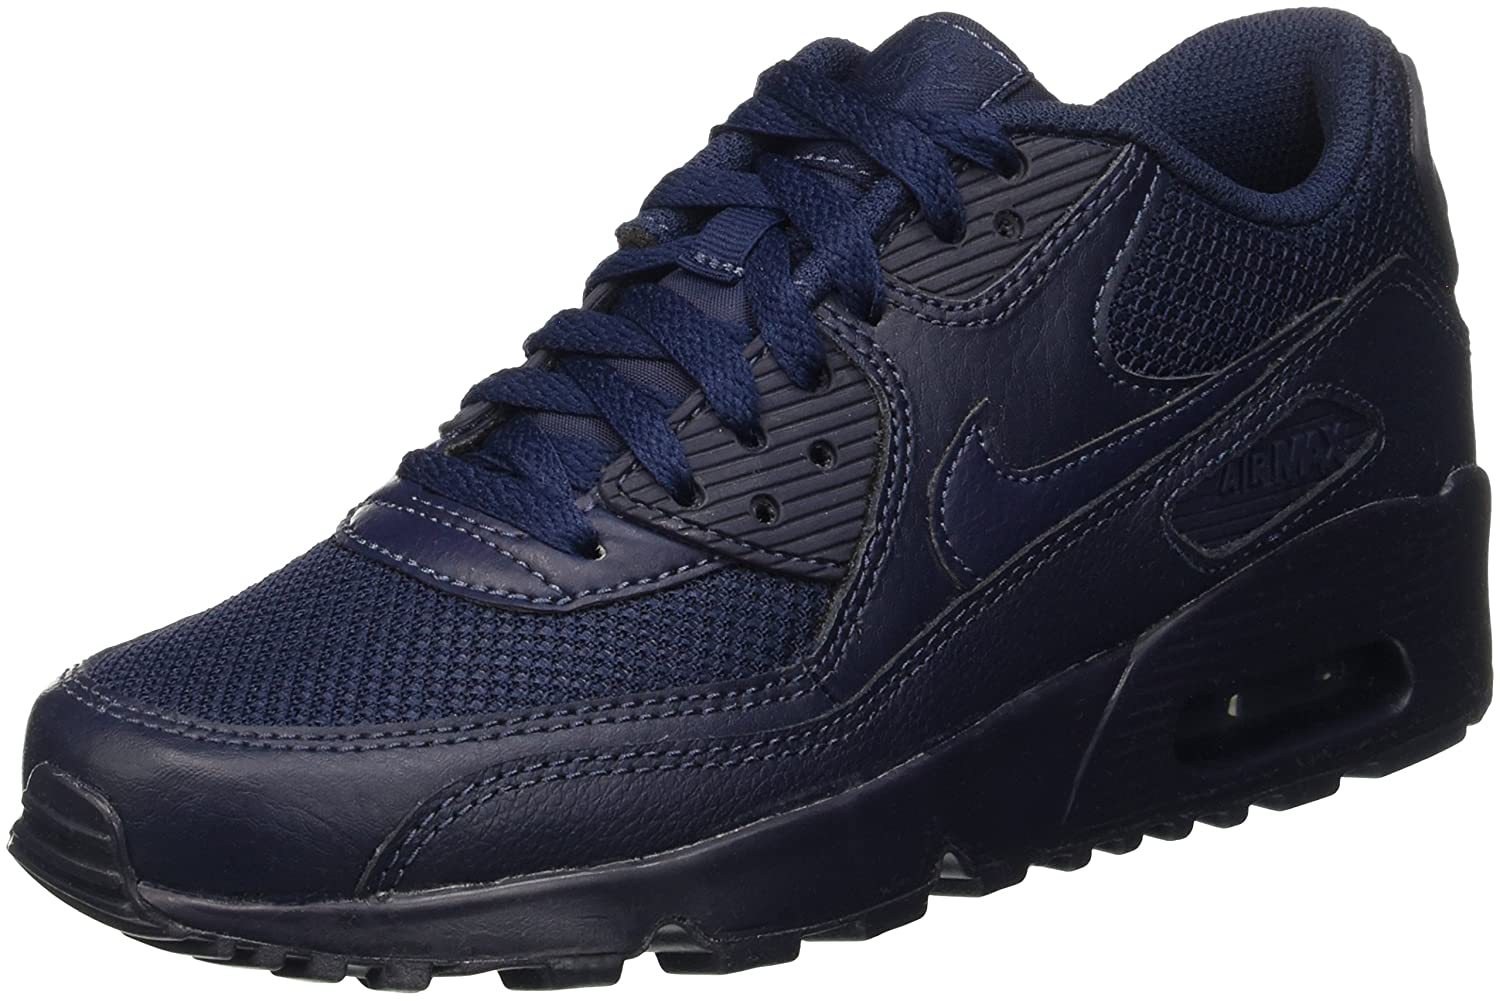 newest c4aed 5afea Nike Boys Air Max 90 Mesh (Gs) Sneakers, Blue Obsidian, 5 UK Amazon.co.uk  Shoes  Bags